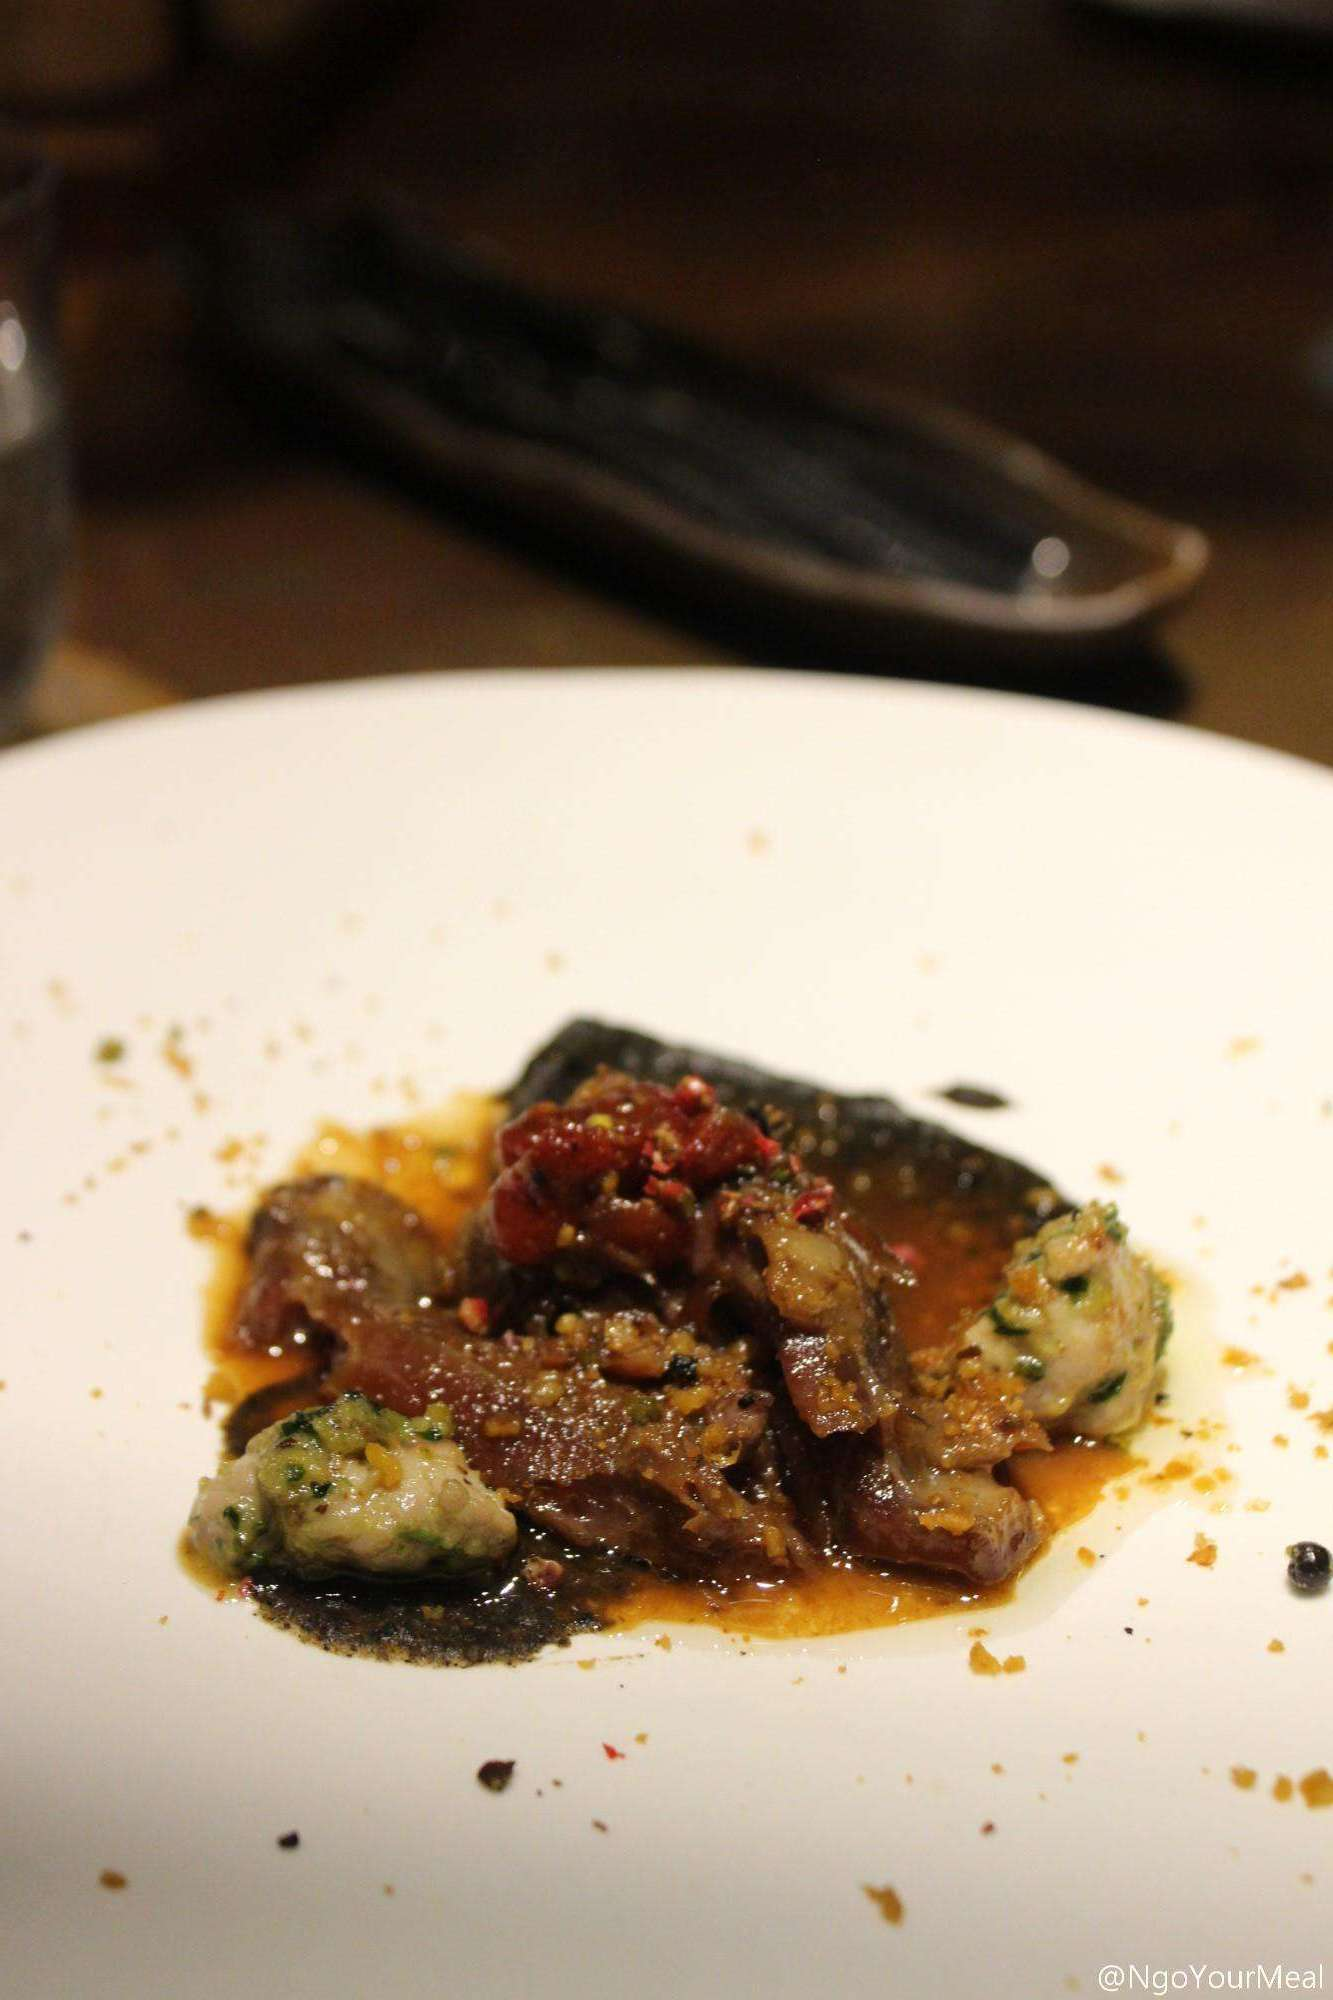 Slow Cooked Lamb with Sweetbreads, Burnt Eggplant, Purée of Garbanzo Beans at Mecha Uma in the Philippines